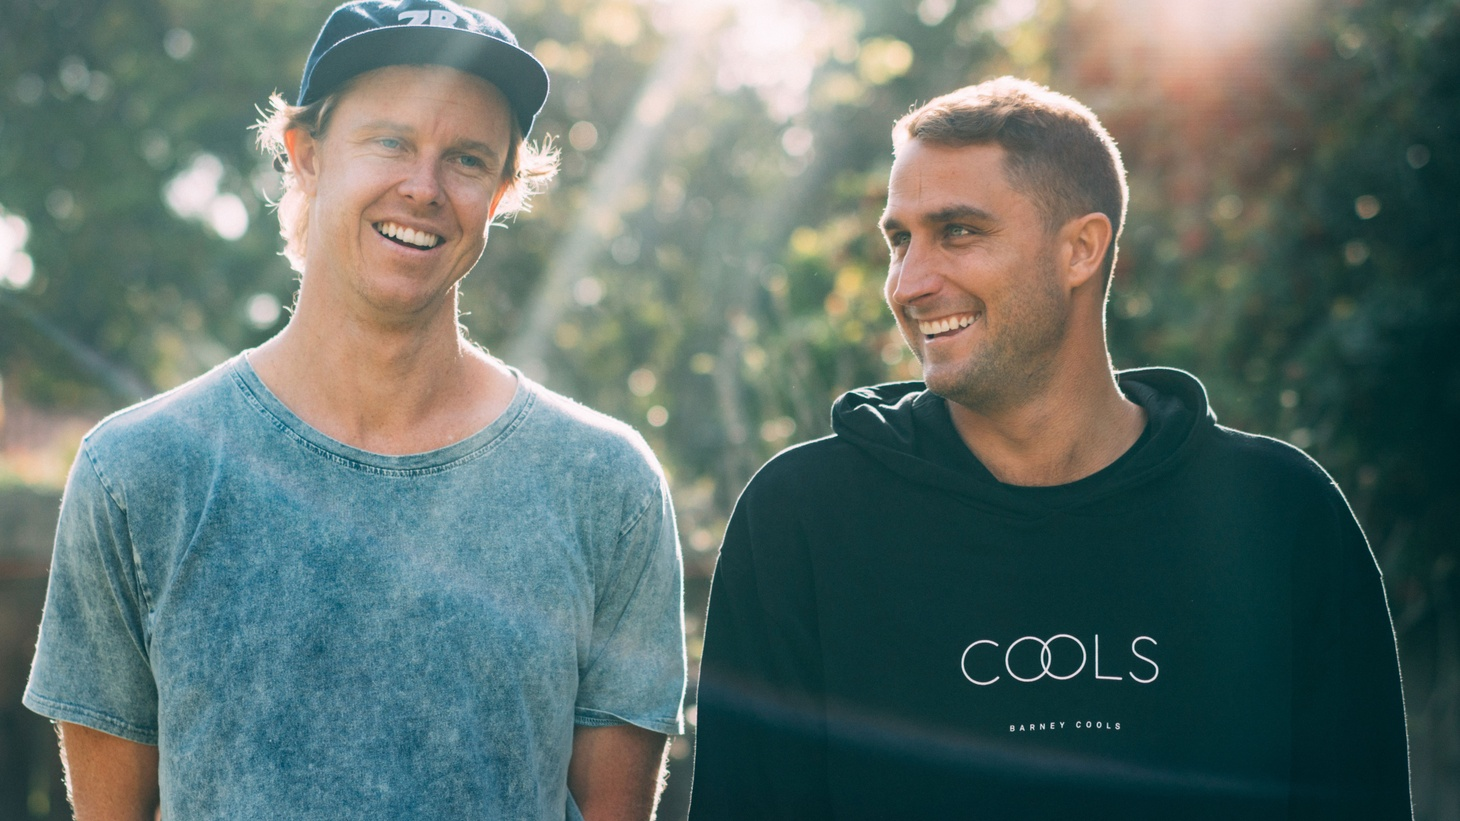 Leigh Sedley and Paul Fisher moved from Australia to America 10 years ago as professional surfers. These days, though, the duo is becoming better known as the DJs and producers called Cut Snake.